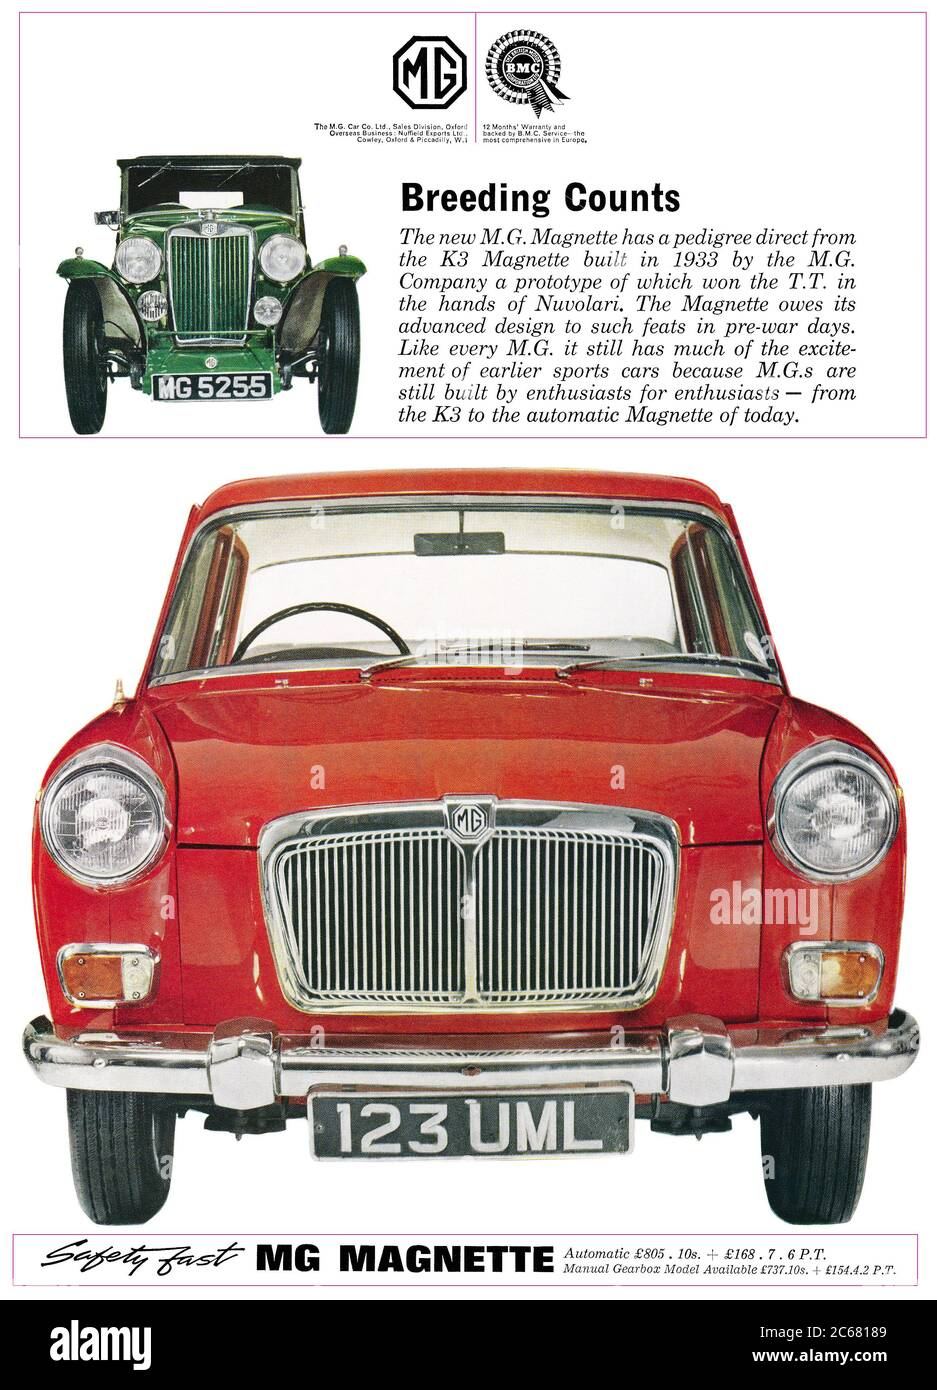 1964 British advertisement for the MG Magnette motor car. Stock Photo